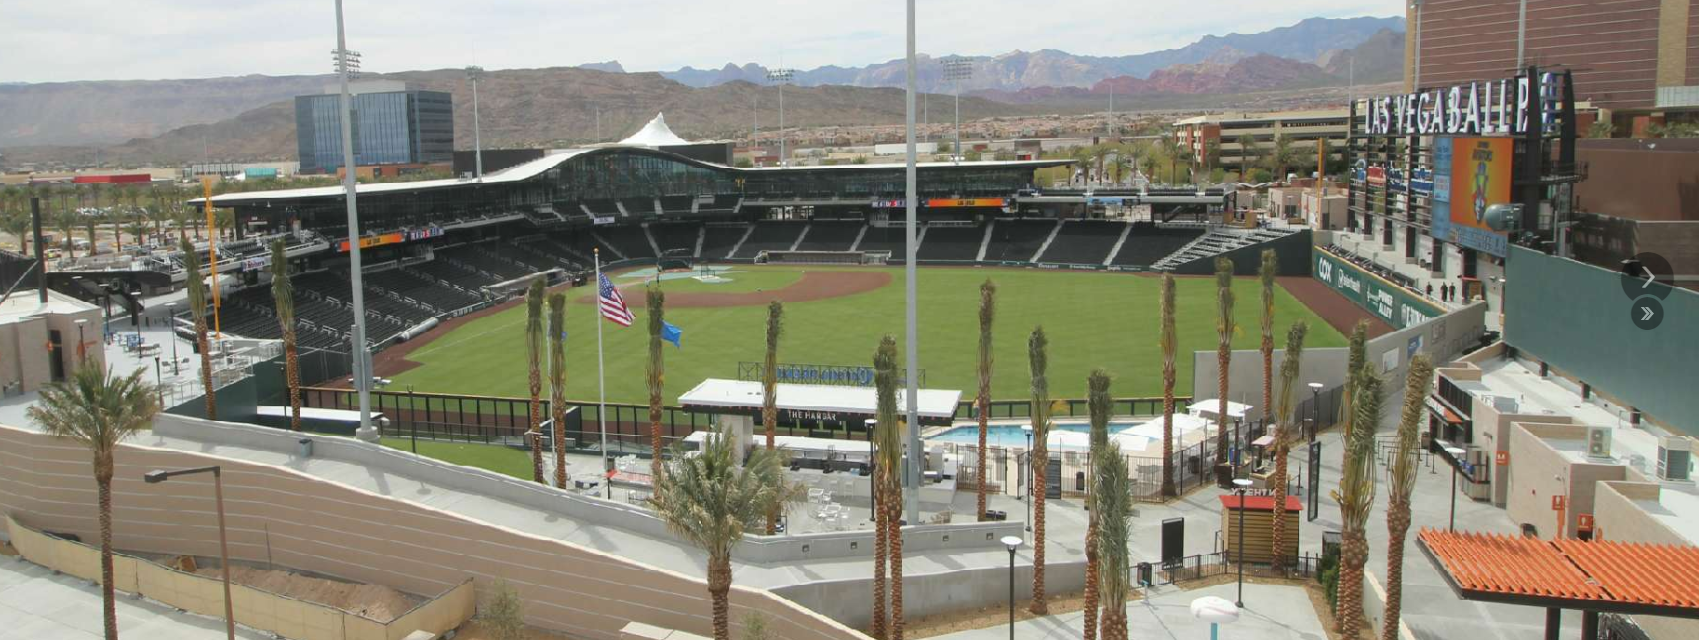 Las Vegas Ballpark in Downtown Summerlin